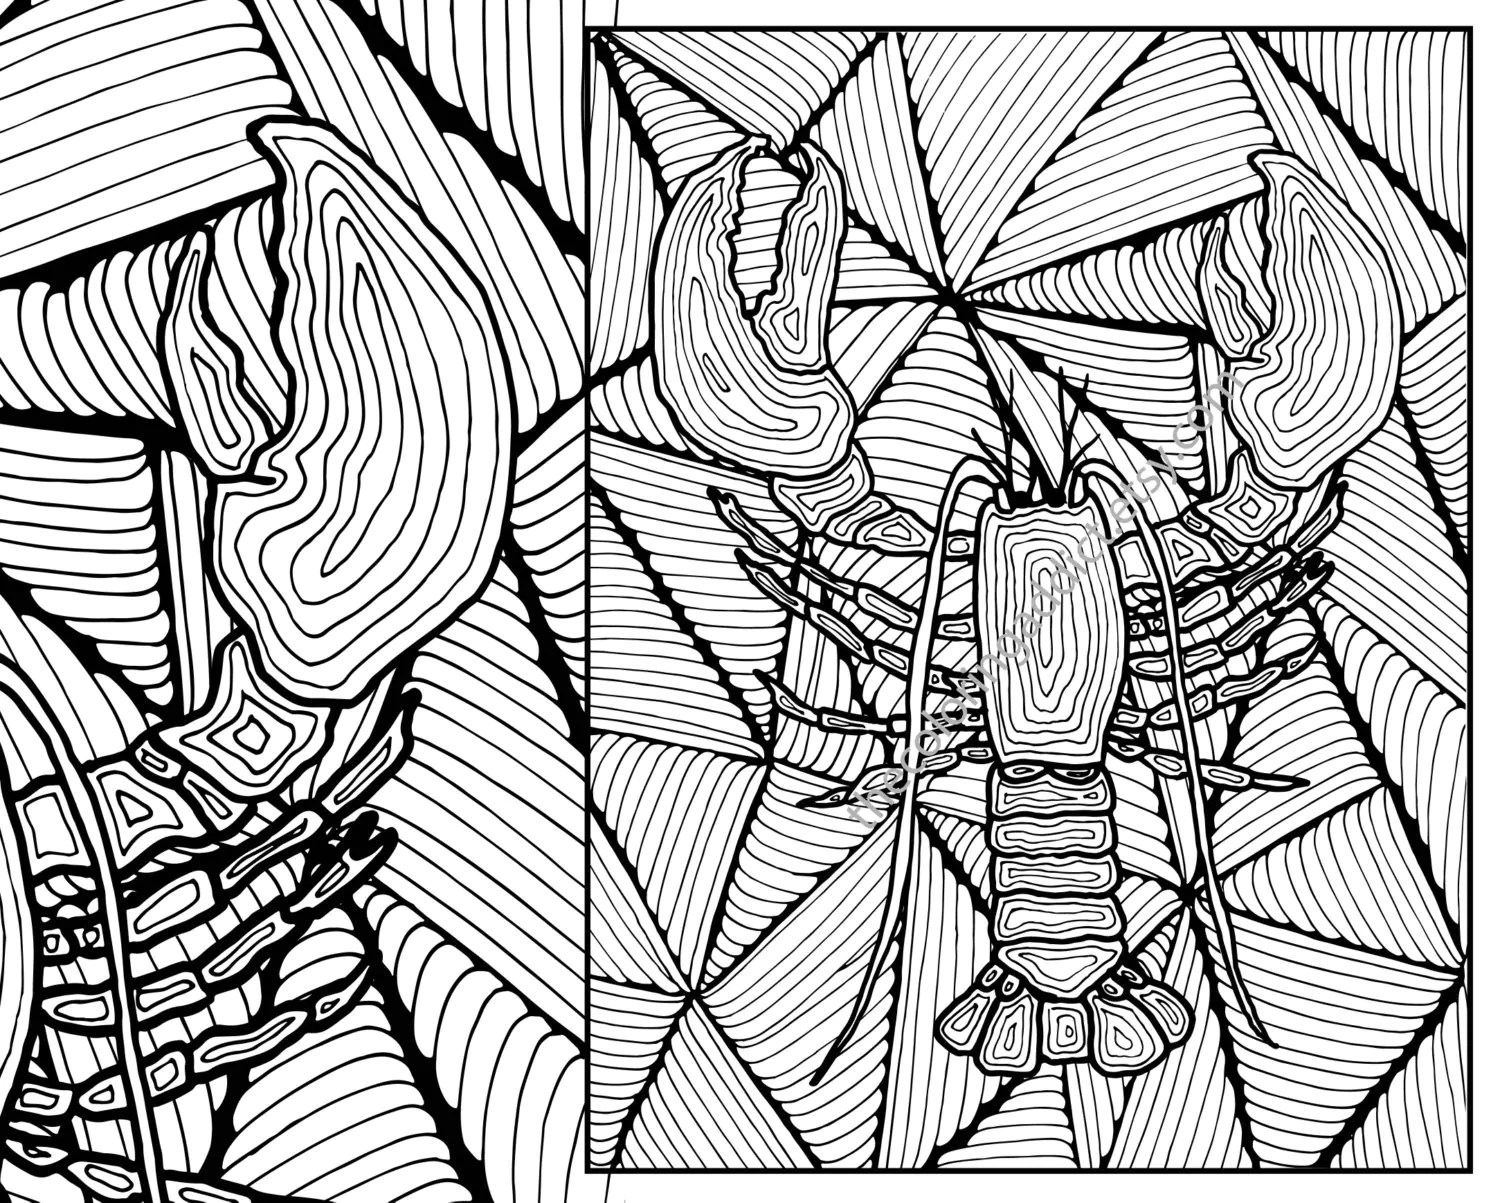 Lobster Adult Coloring Page Adult Coloring Sheet Colouring